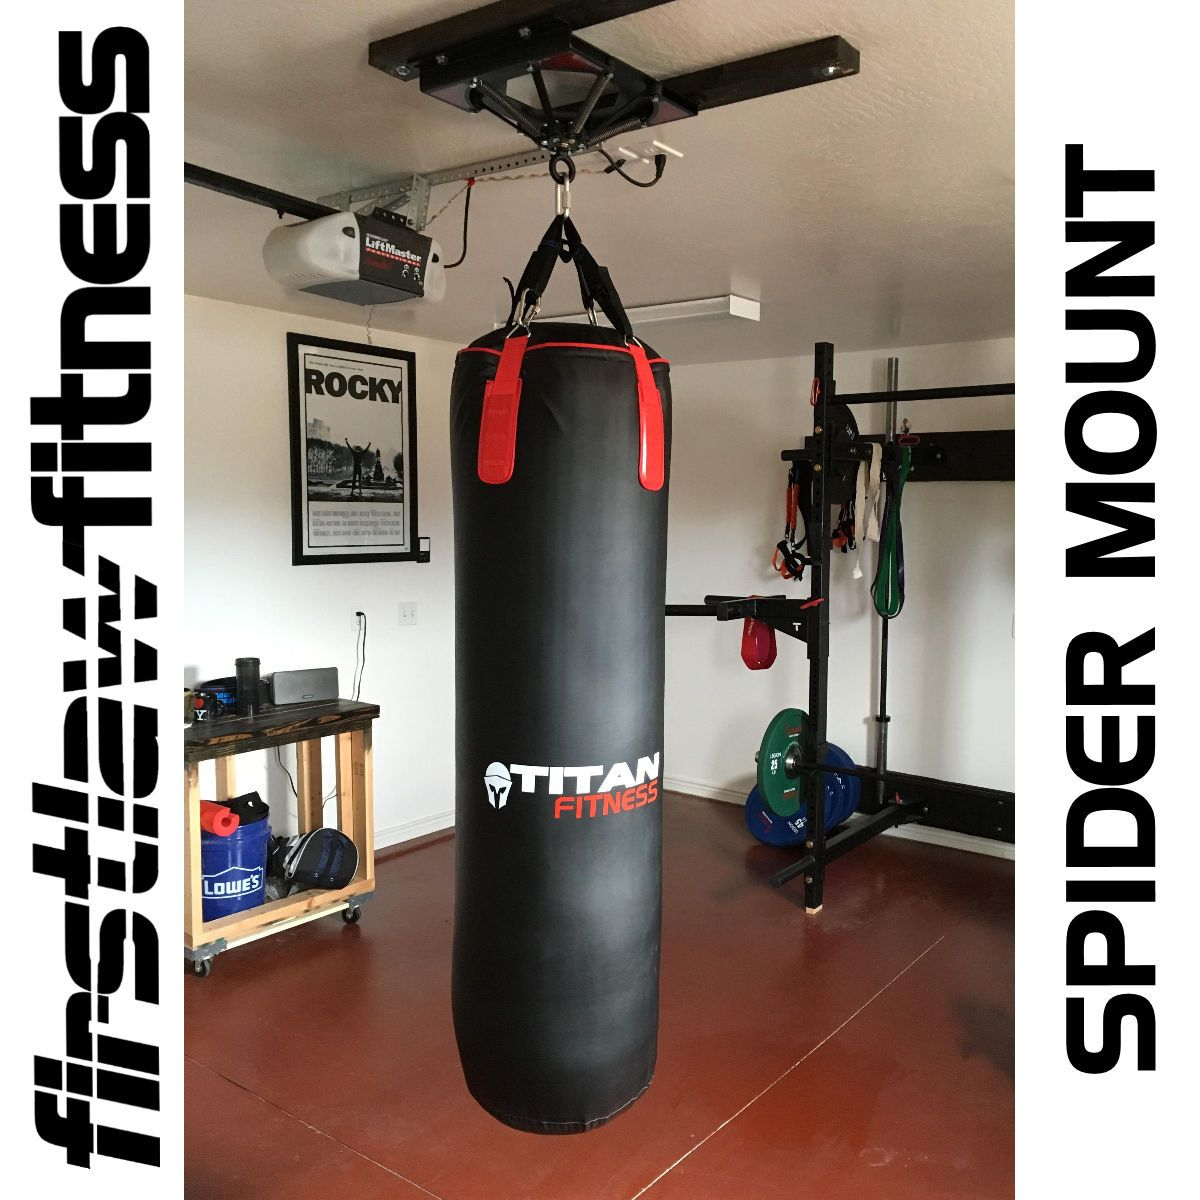 Another Spider Mount In A Great Looking Home Gym With